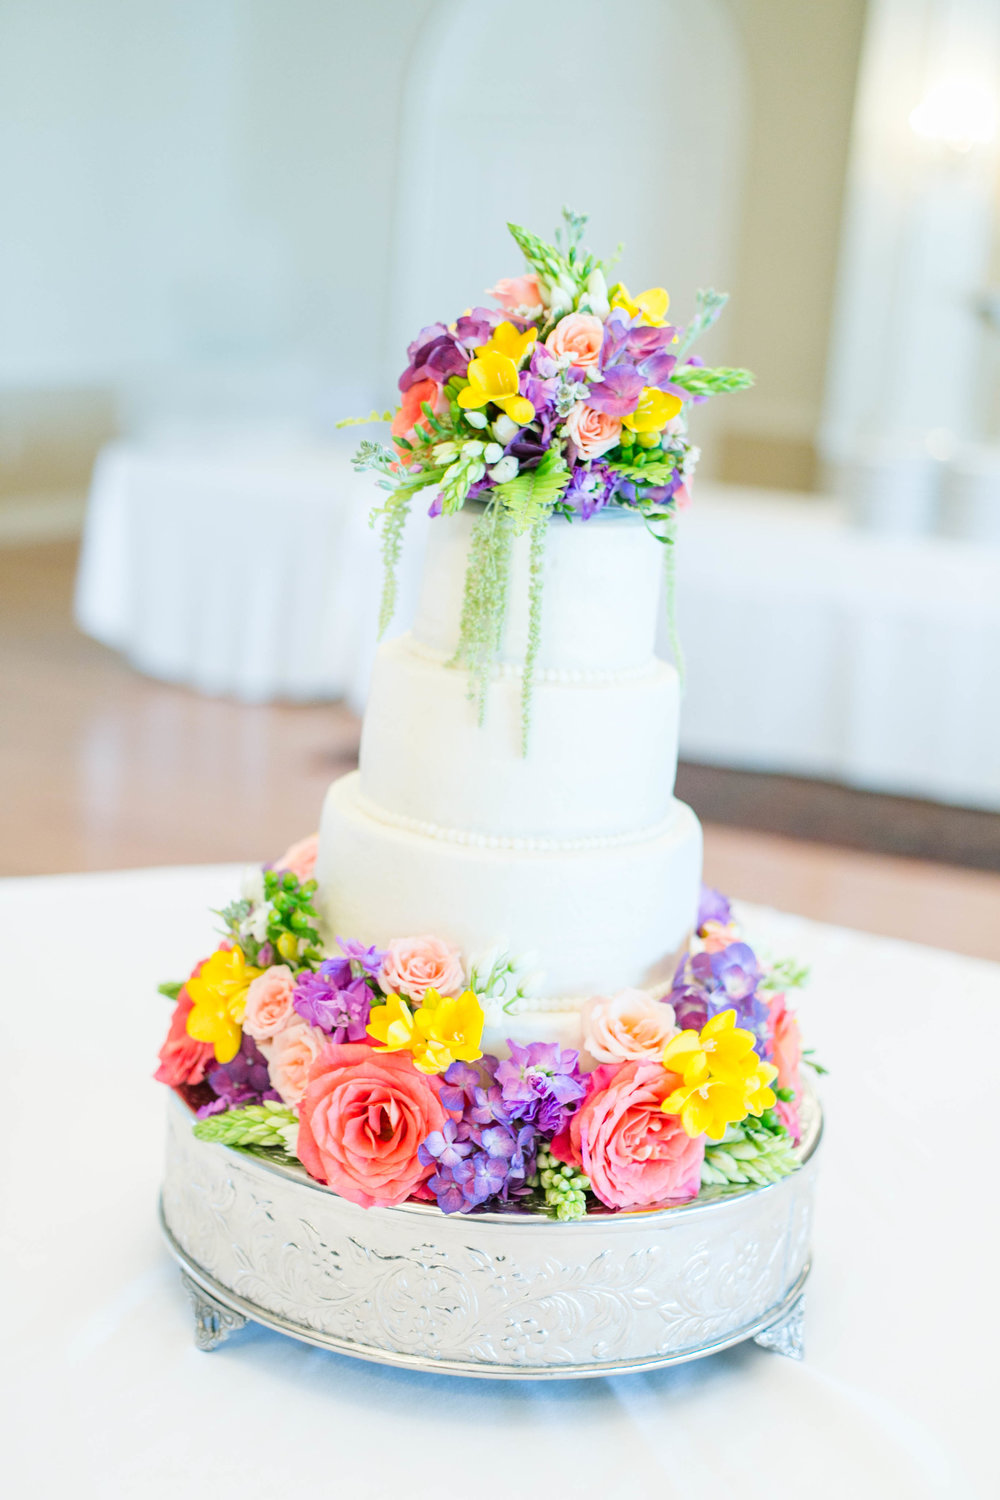 Johnson City Country Club wedding, wedding flowers, florals, East Tennessee wedding venue, Tri Cities TN wedding photographer, wedding cake